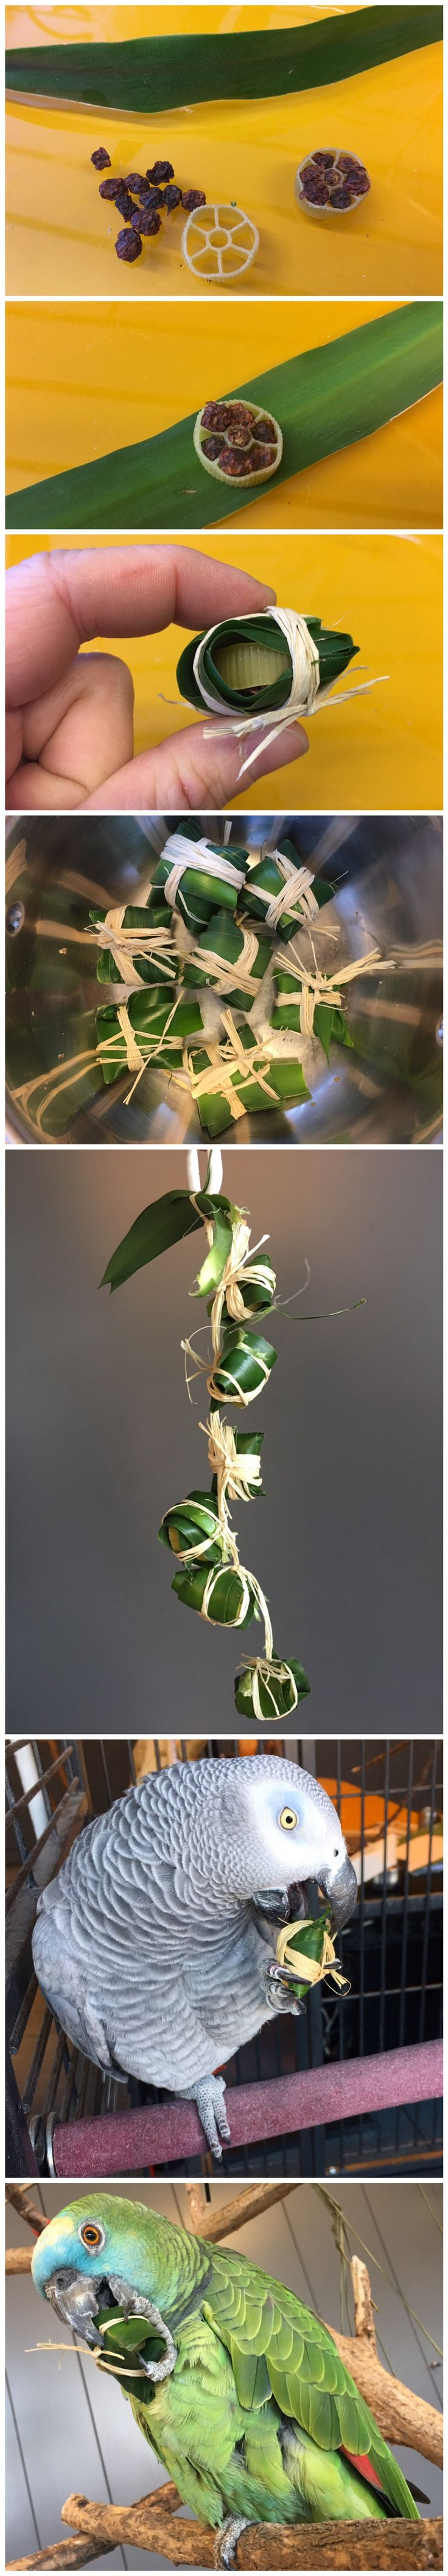 Parrot foraging foot toy: pasta filled with dried berries and wrapped up in yucca leaves